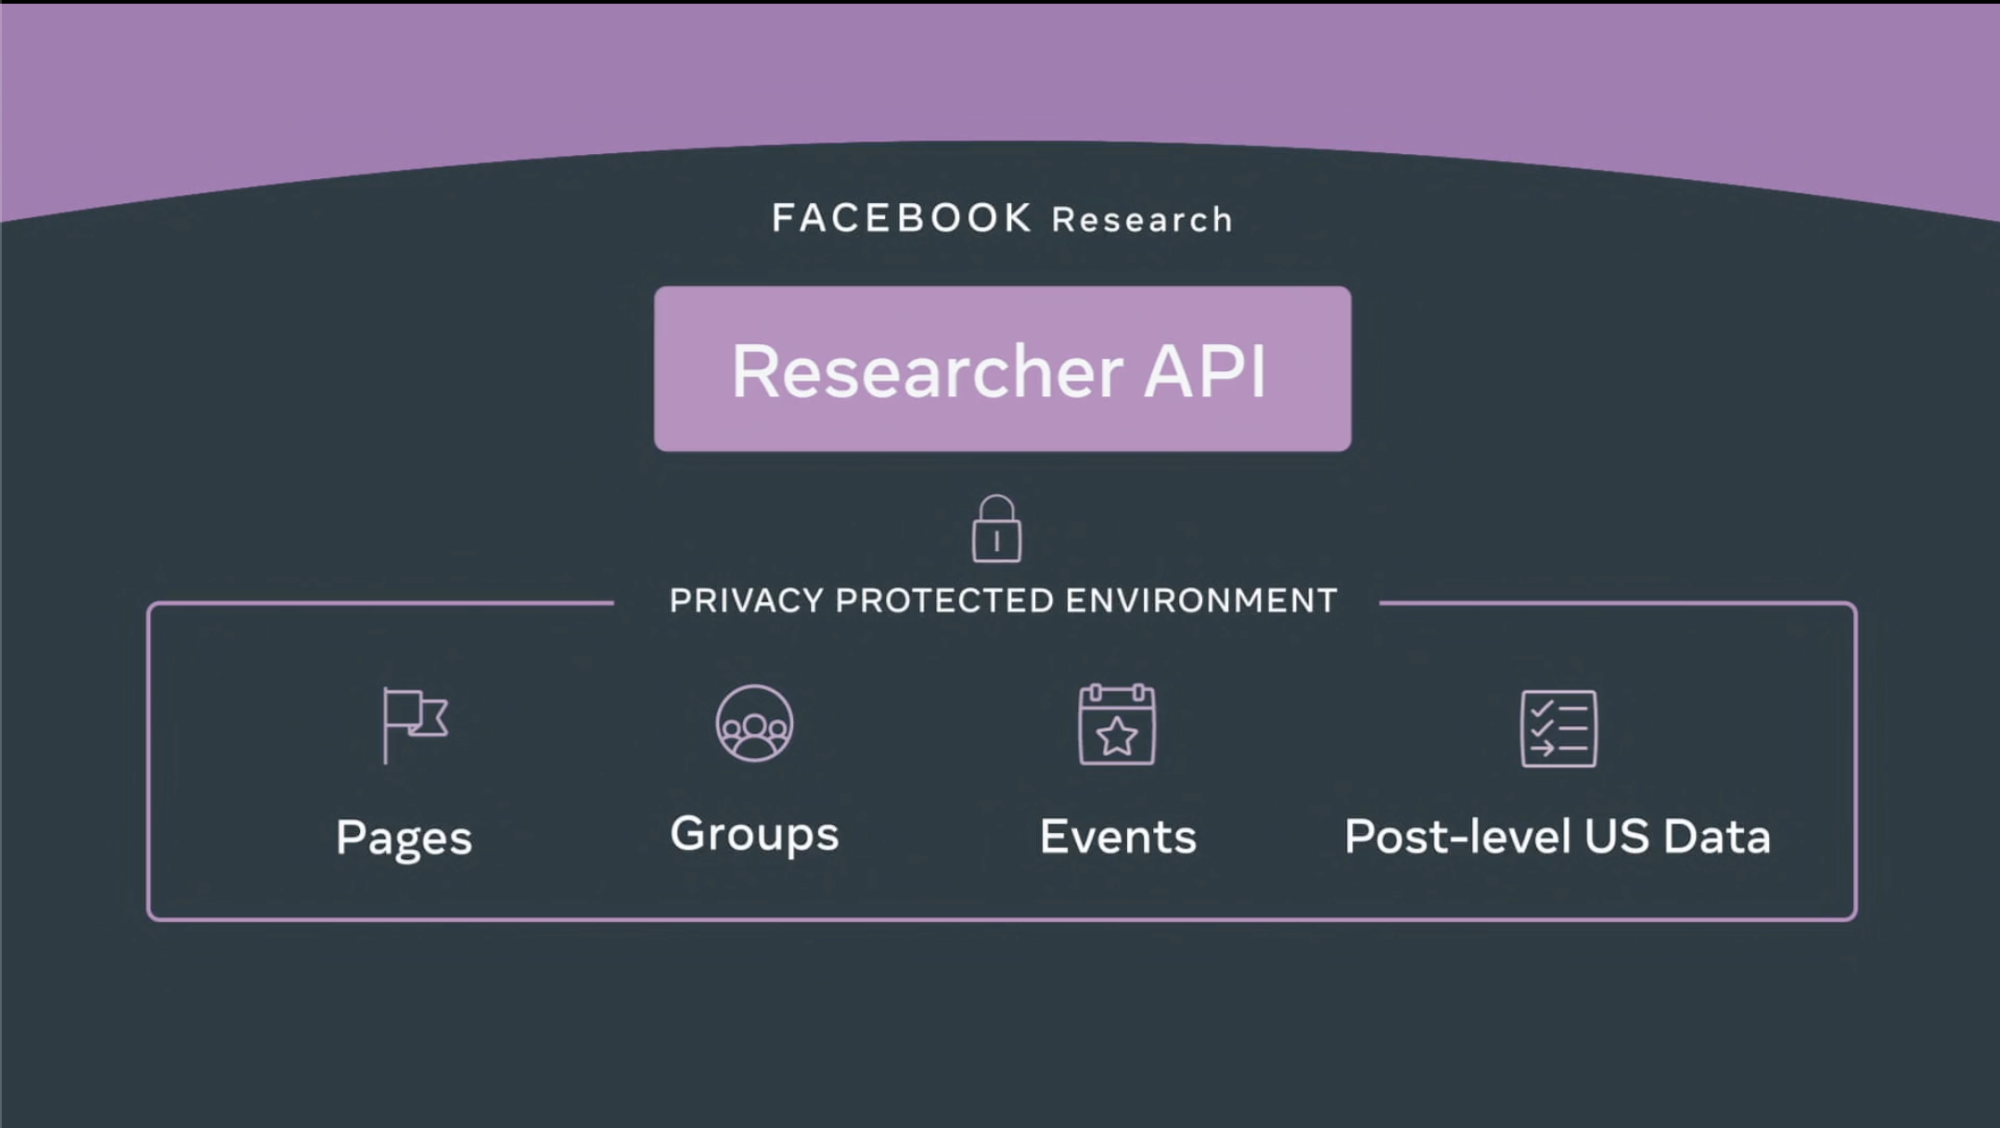 Facebook makes it easier for researchers to study fringe groups